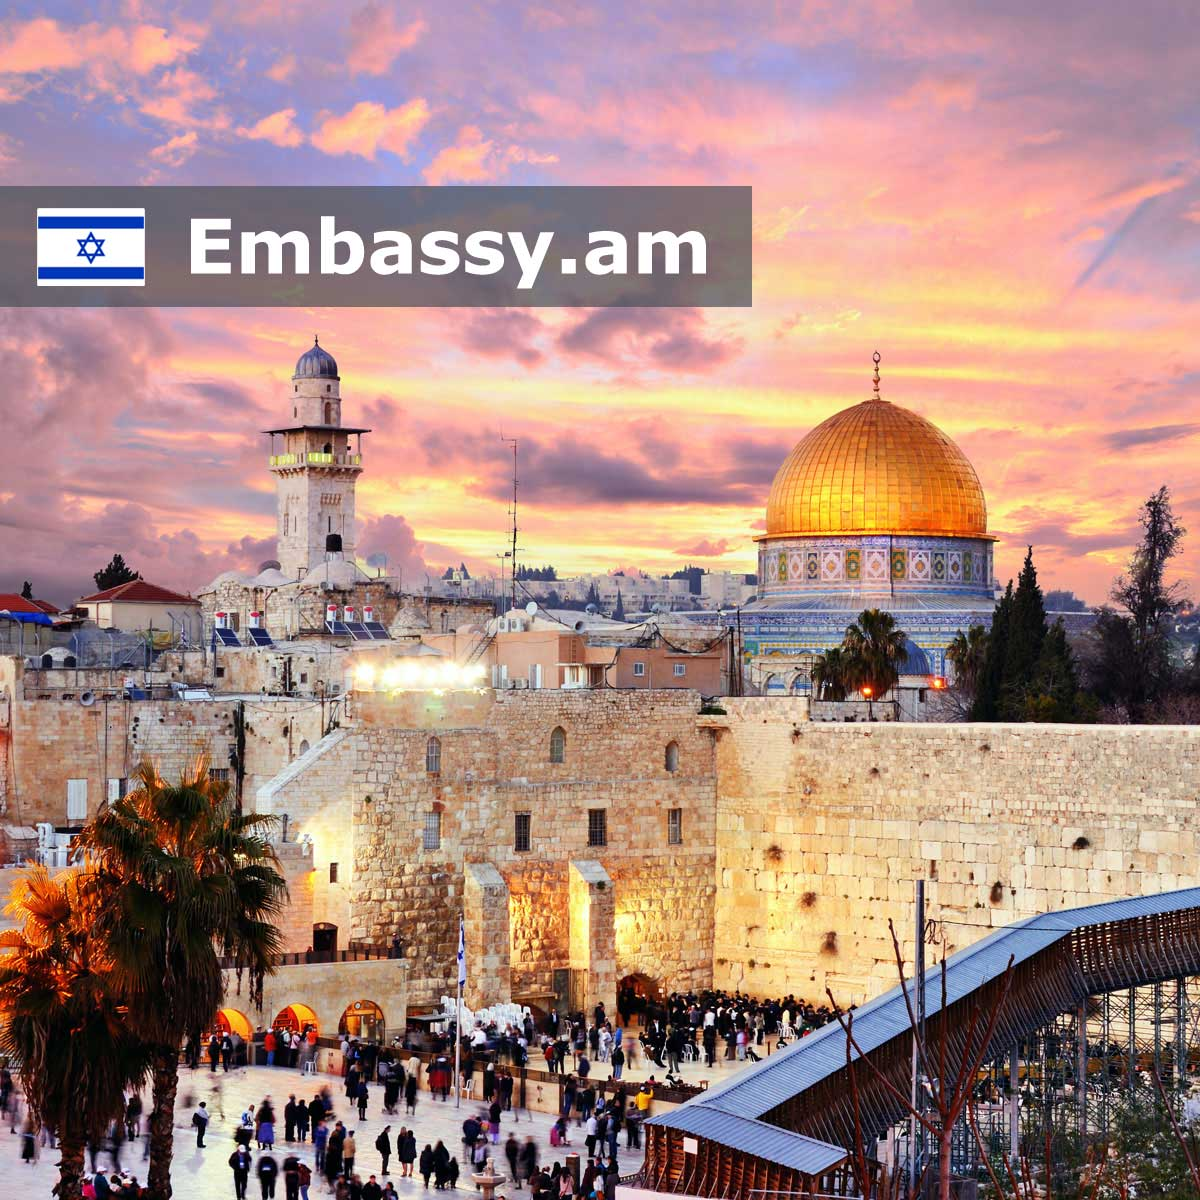 Hotels in Israel - Embassy.am